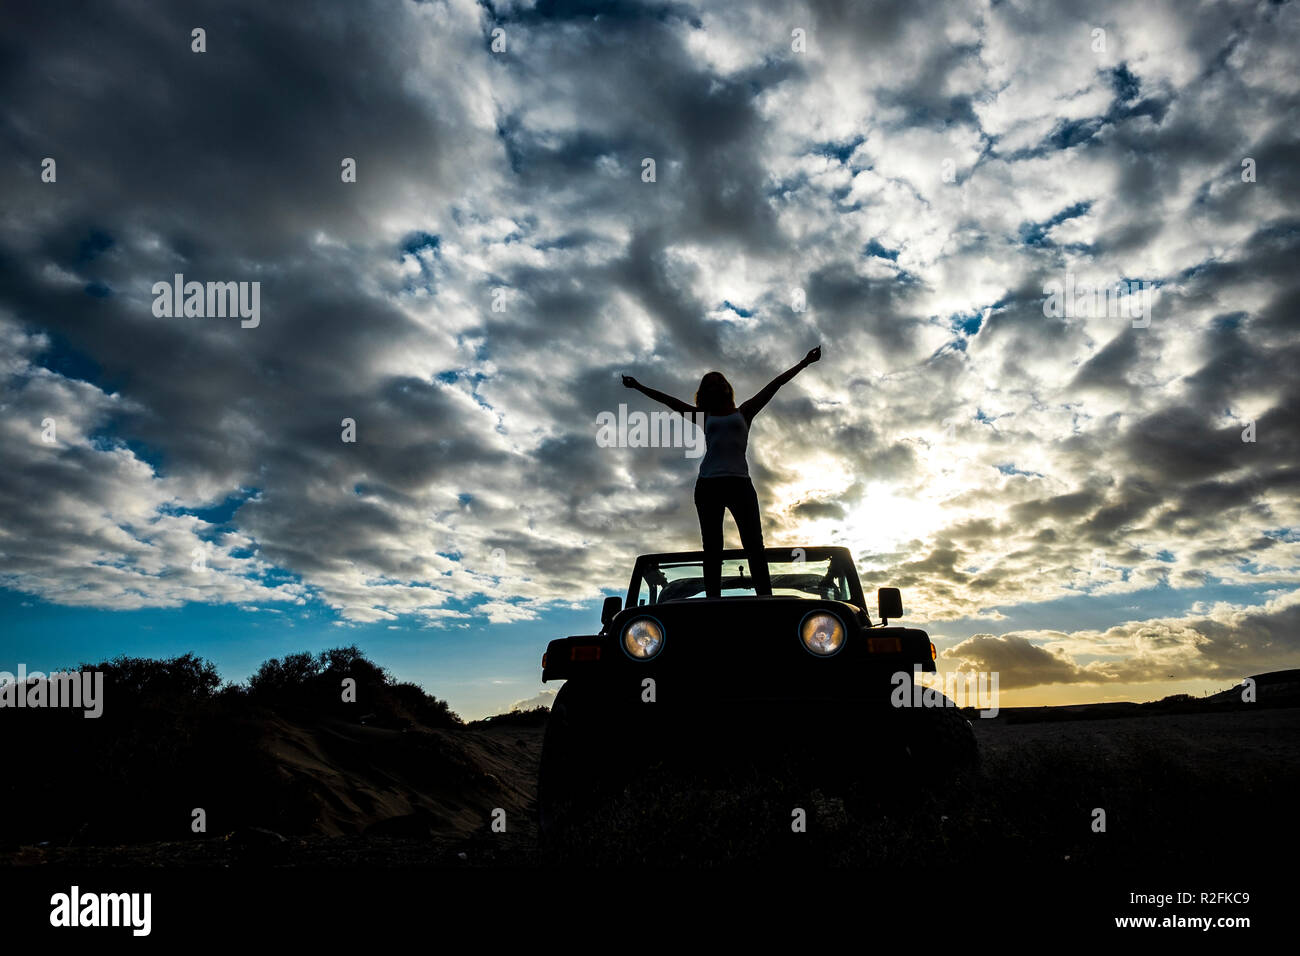 winner and satisfaction concept. traveler cute girl with nice body standing up on the front of the car with amazing sunset on the background. Tenerife location. - Stock Image